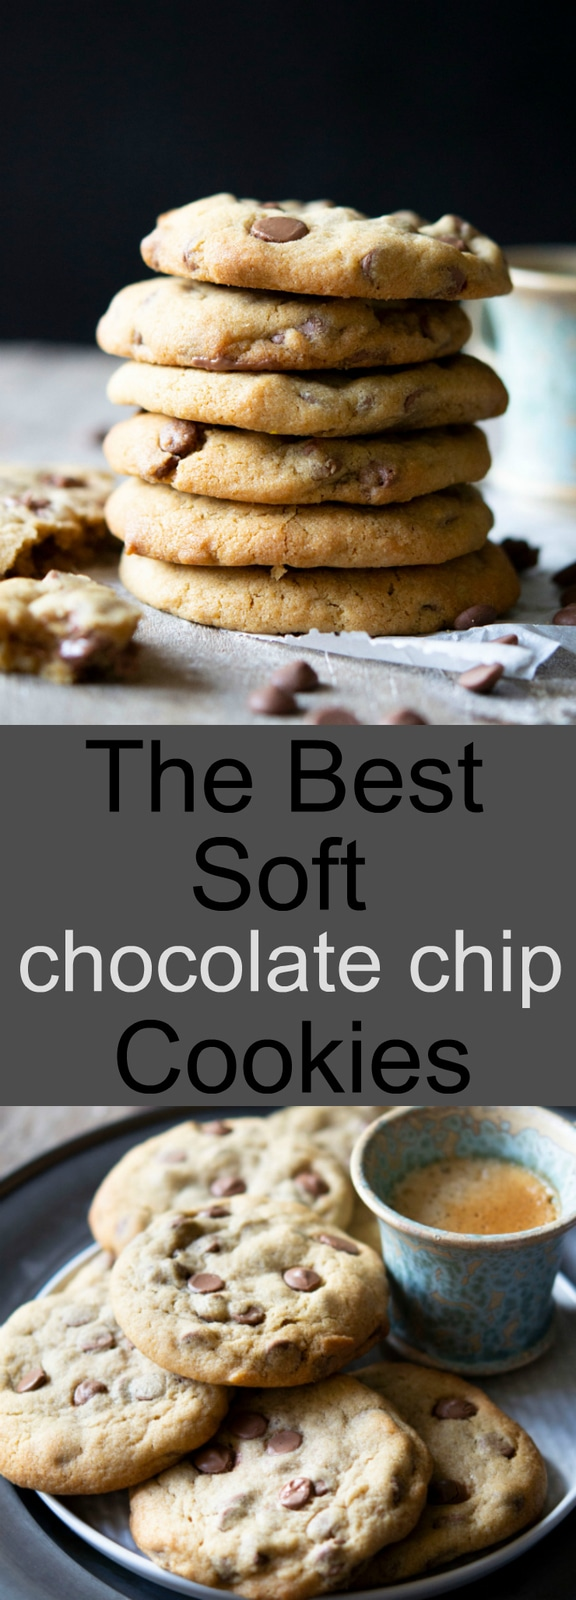 Thick and soft chocolate chip cookies. This is my go-to recipe forsoft cookies.